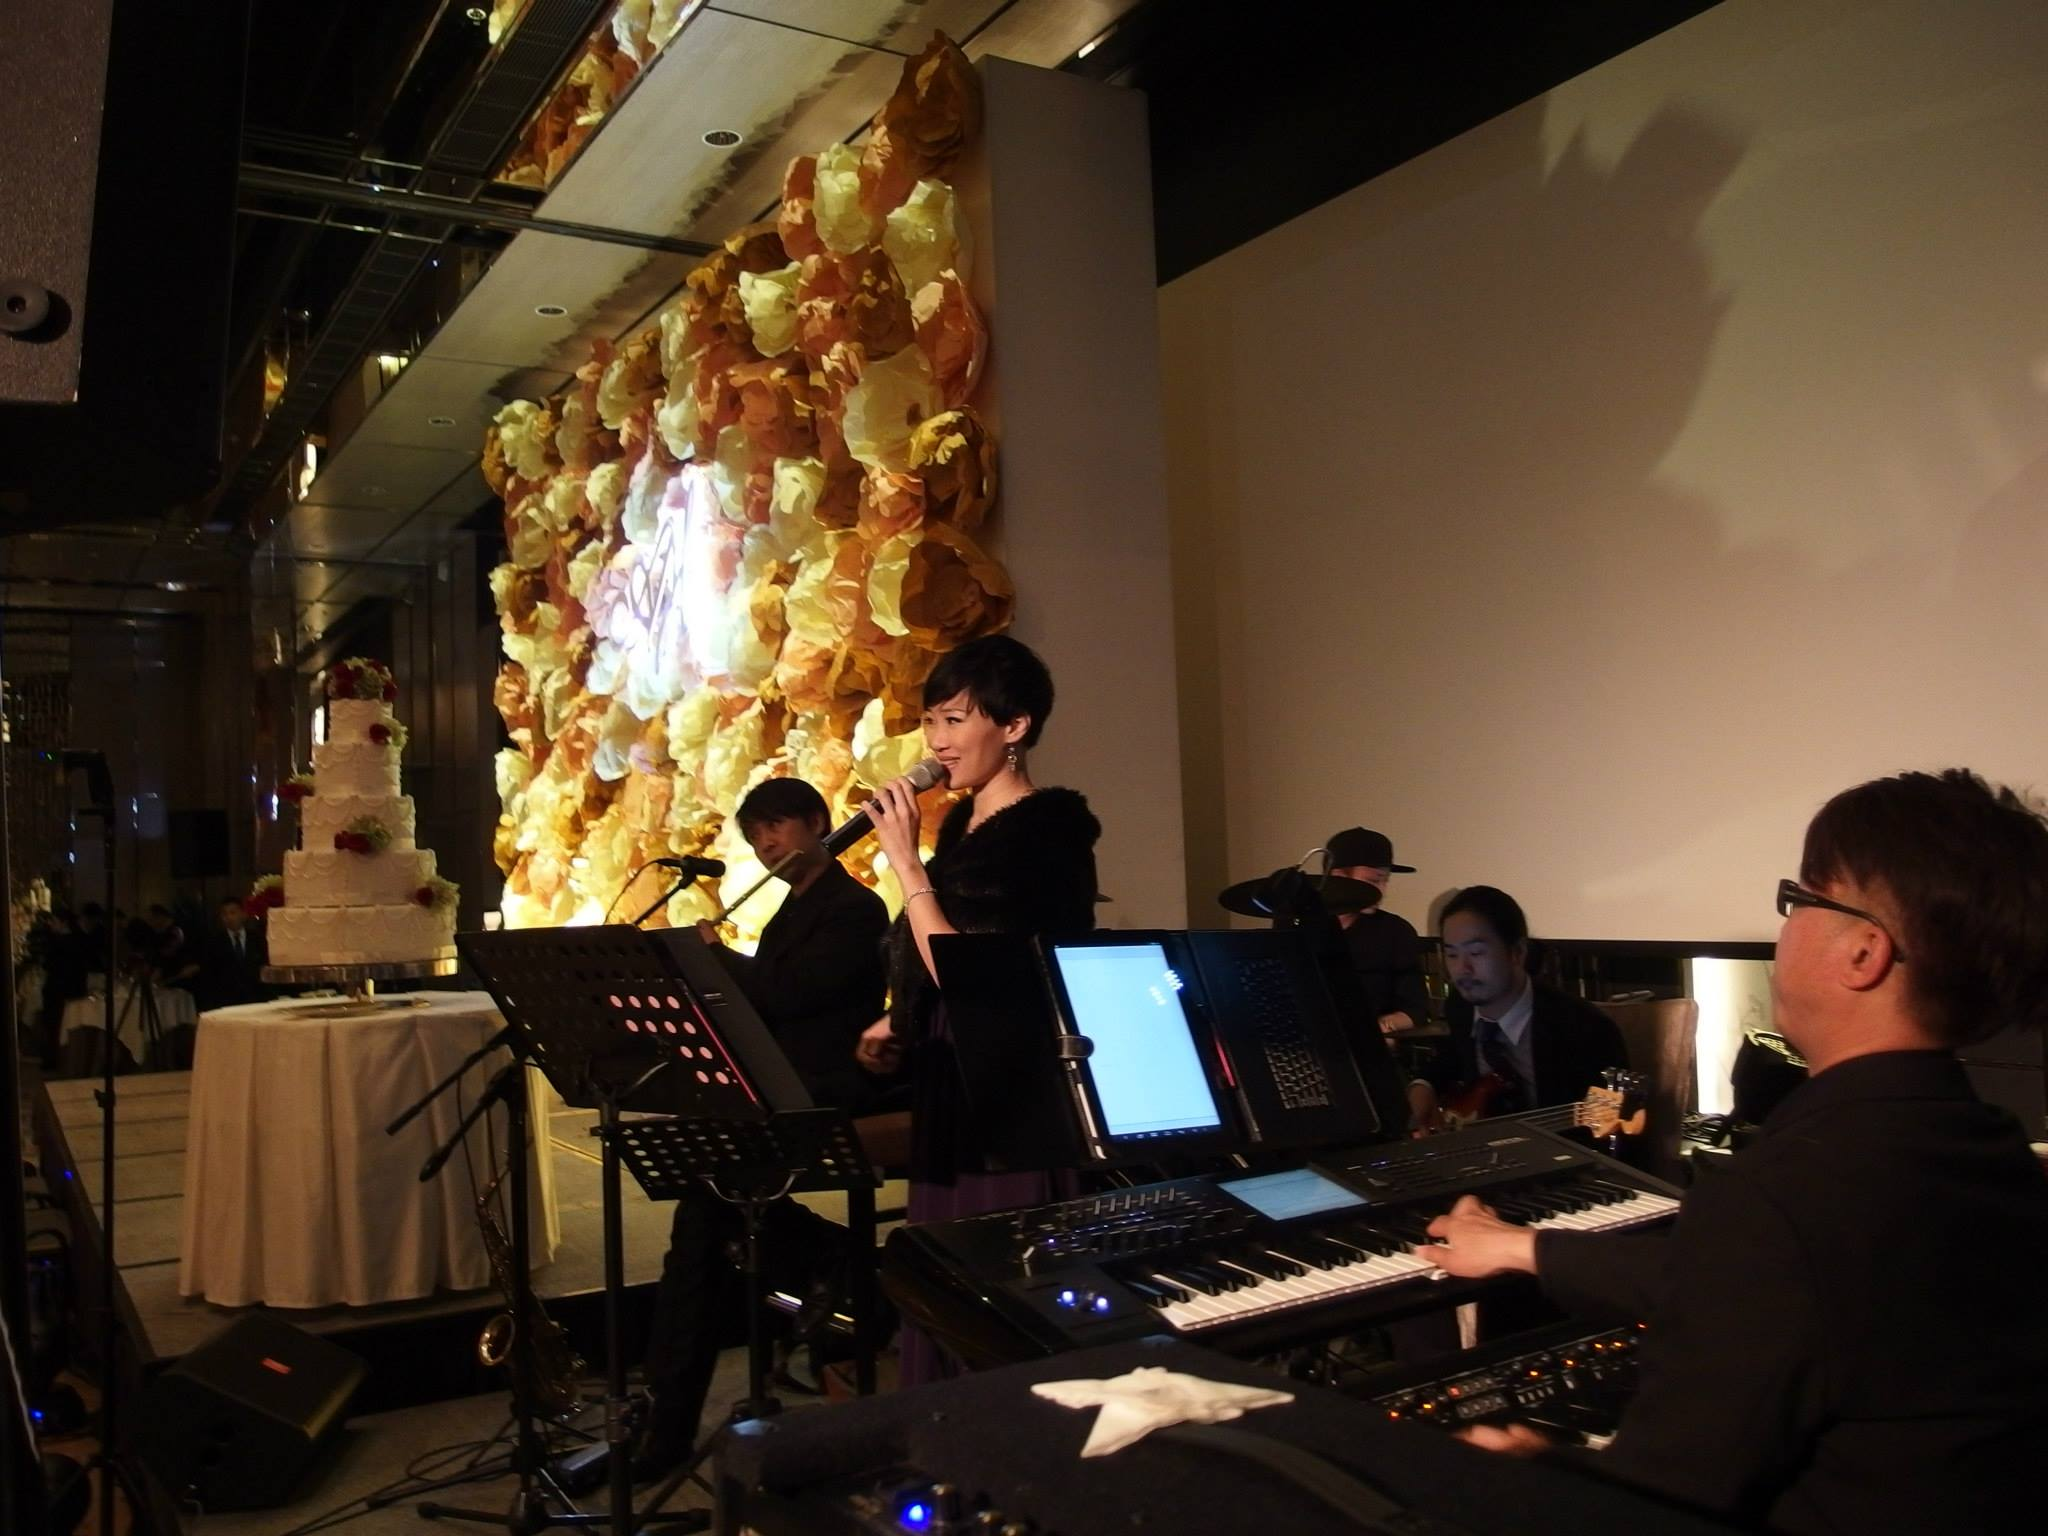 Unison Production Live Music band performance - Wedding Ceremony at Ritz Carlton